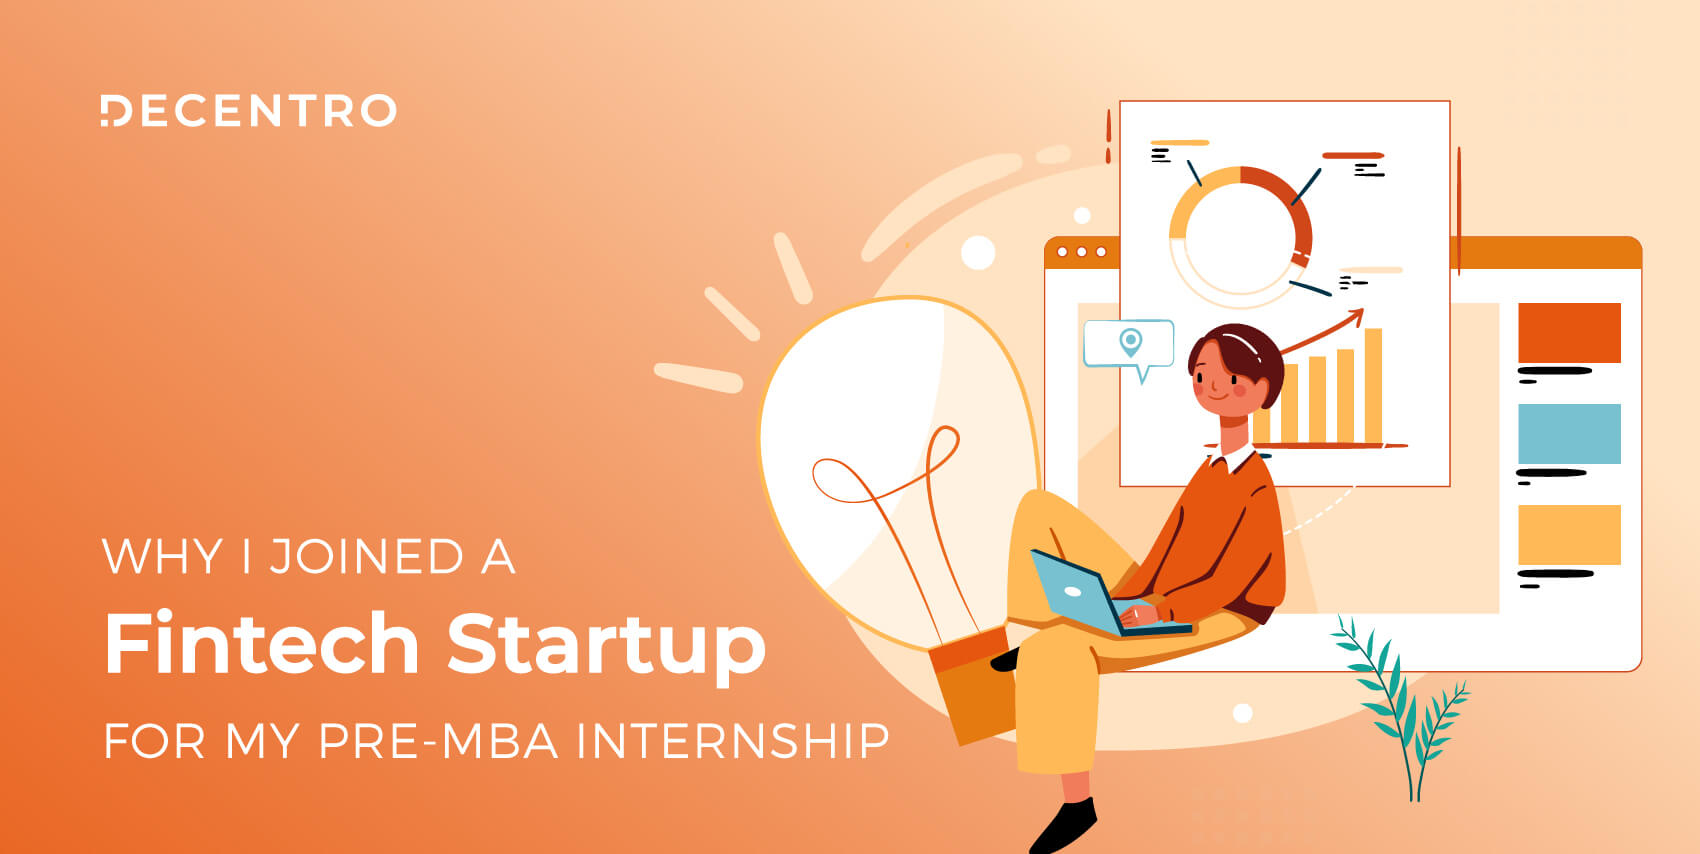 Here's Aastha's account of her My Pre-MBA Internship journey at Decentro. She explains how she landed the opportunity & her experience as an intern!